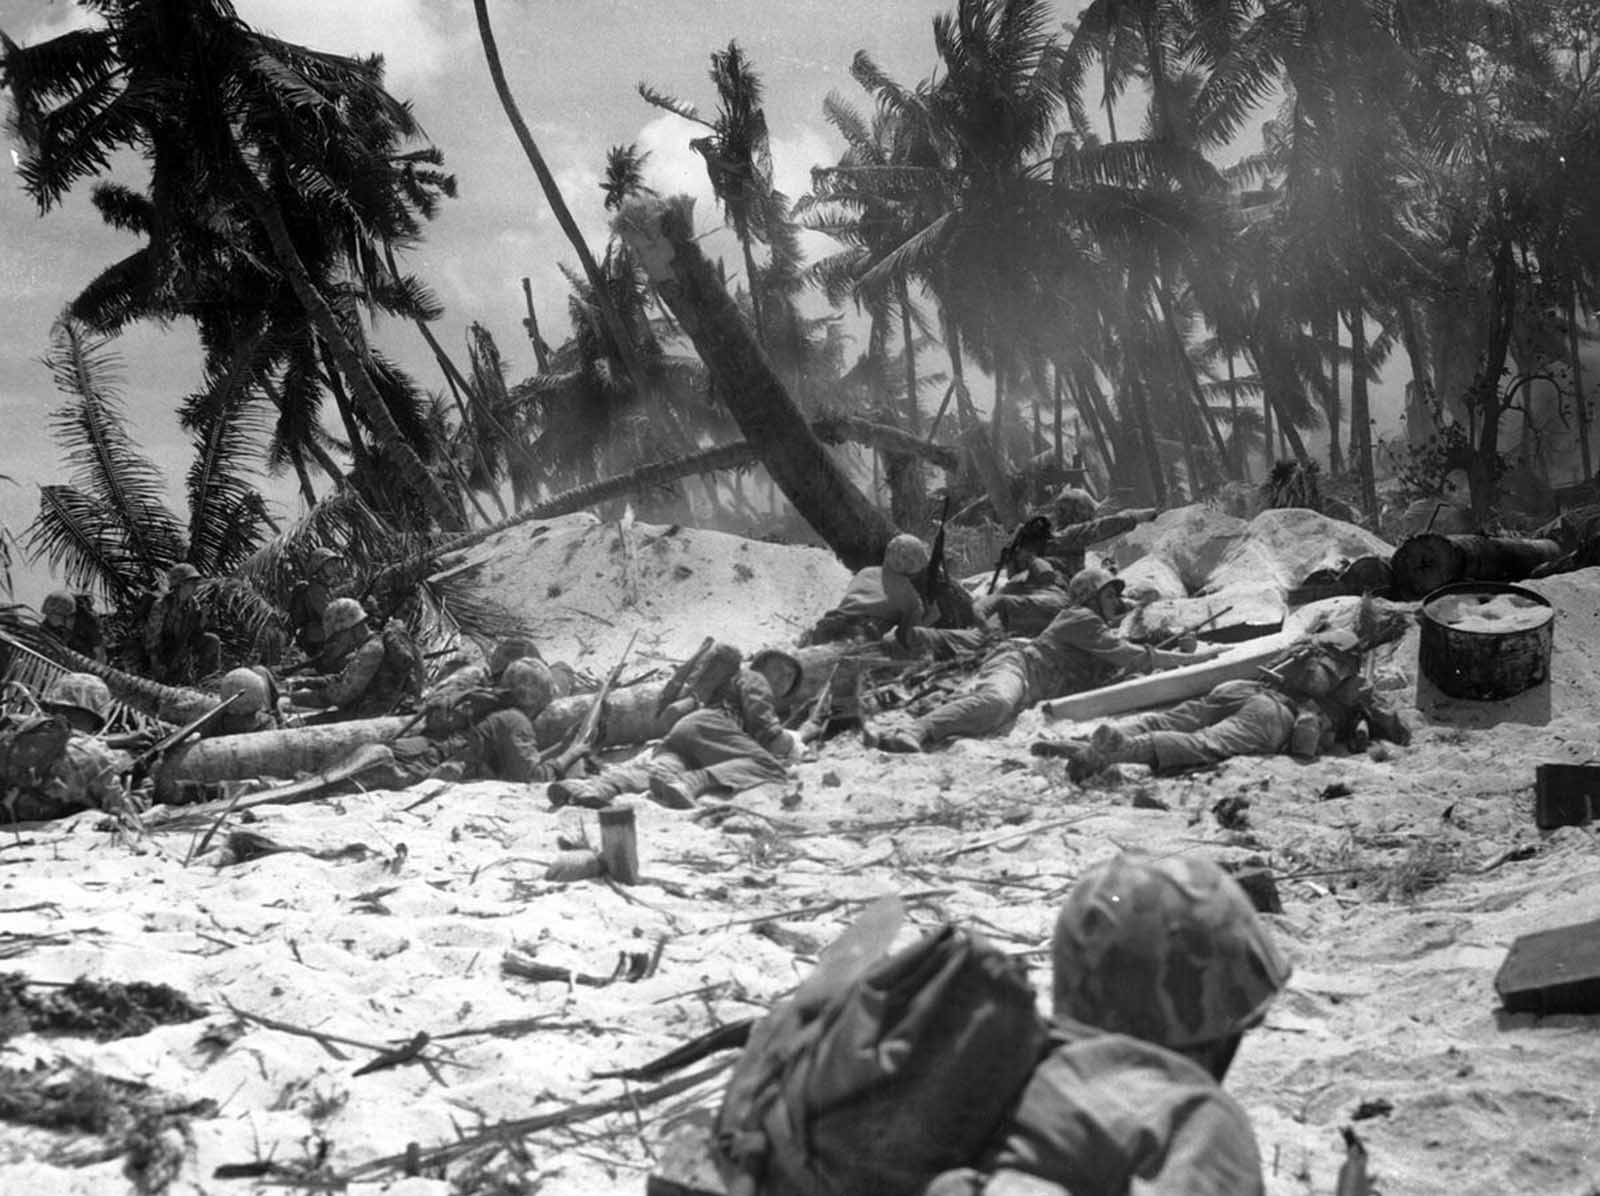 U.S. Marines are seen as they advance against Japanese positions during the invasion at Tarawa atoll, Gilbert Islands, in this late November 1943 photo. Of the nearly 5,000 Japanese soldiers and workers on the island, only 146 were captured, the rest were killed.